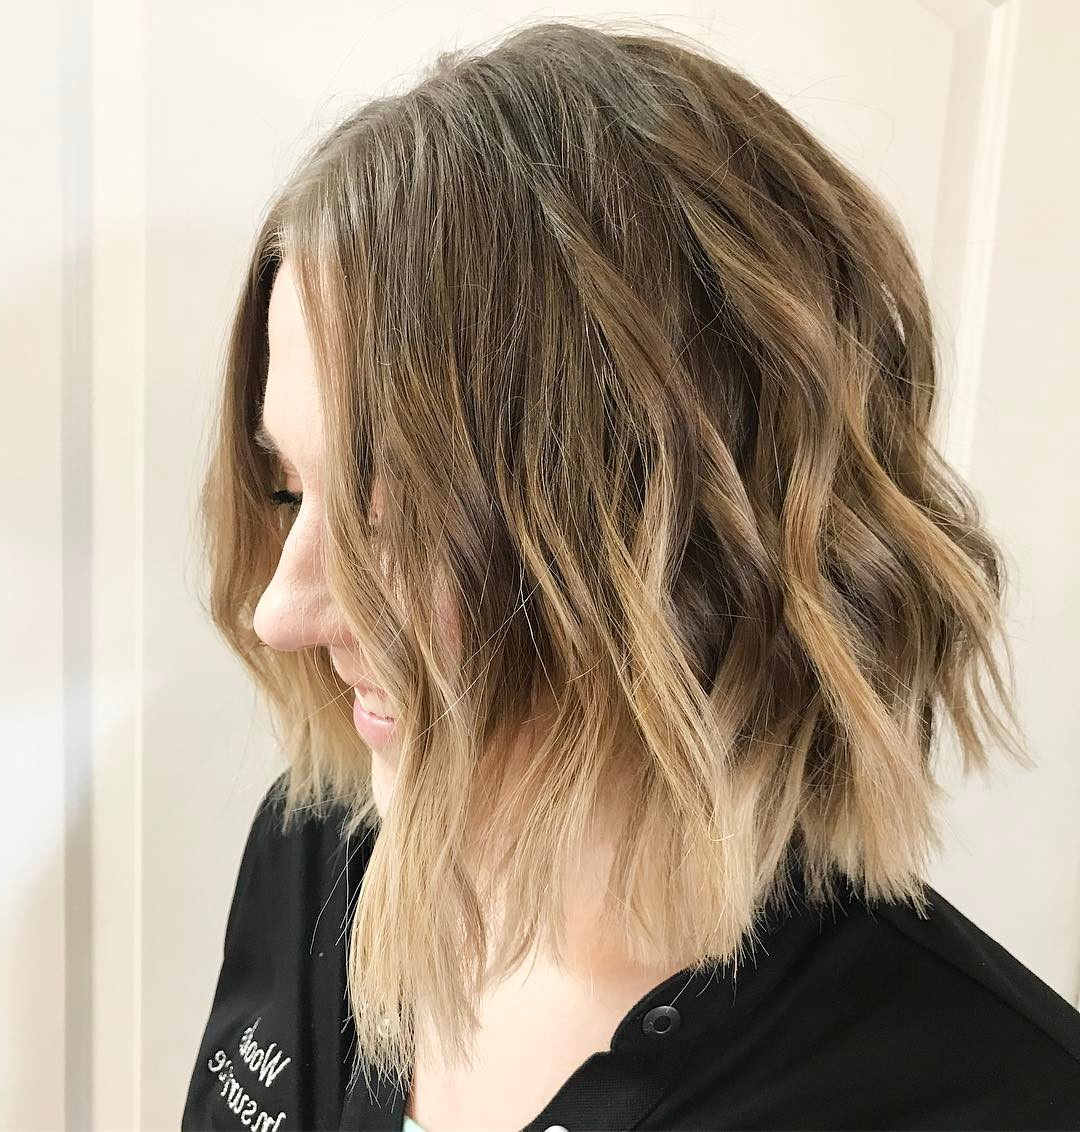 10 Beautiful Medium Bob Haircuts &edgy Looks: Shoulder Length Pertaining To Short Bob Hairstyles With Long Edgy Layers (View 8 of 25)